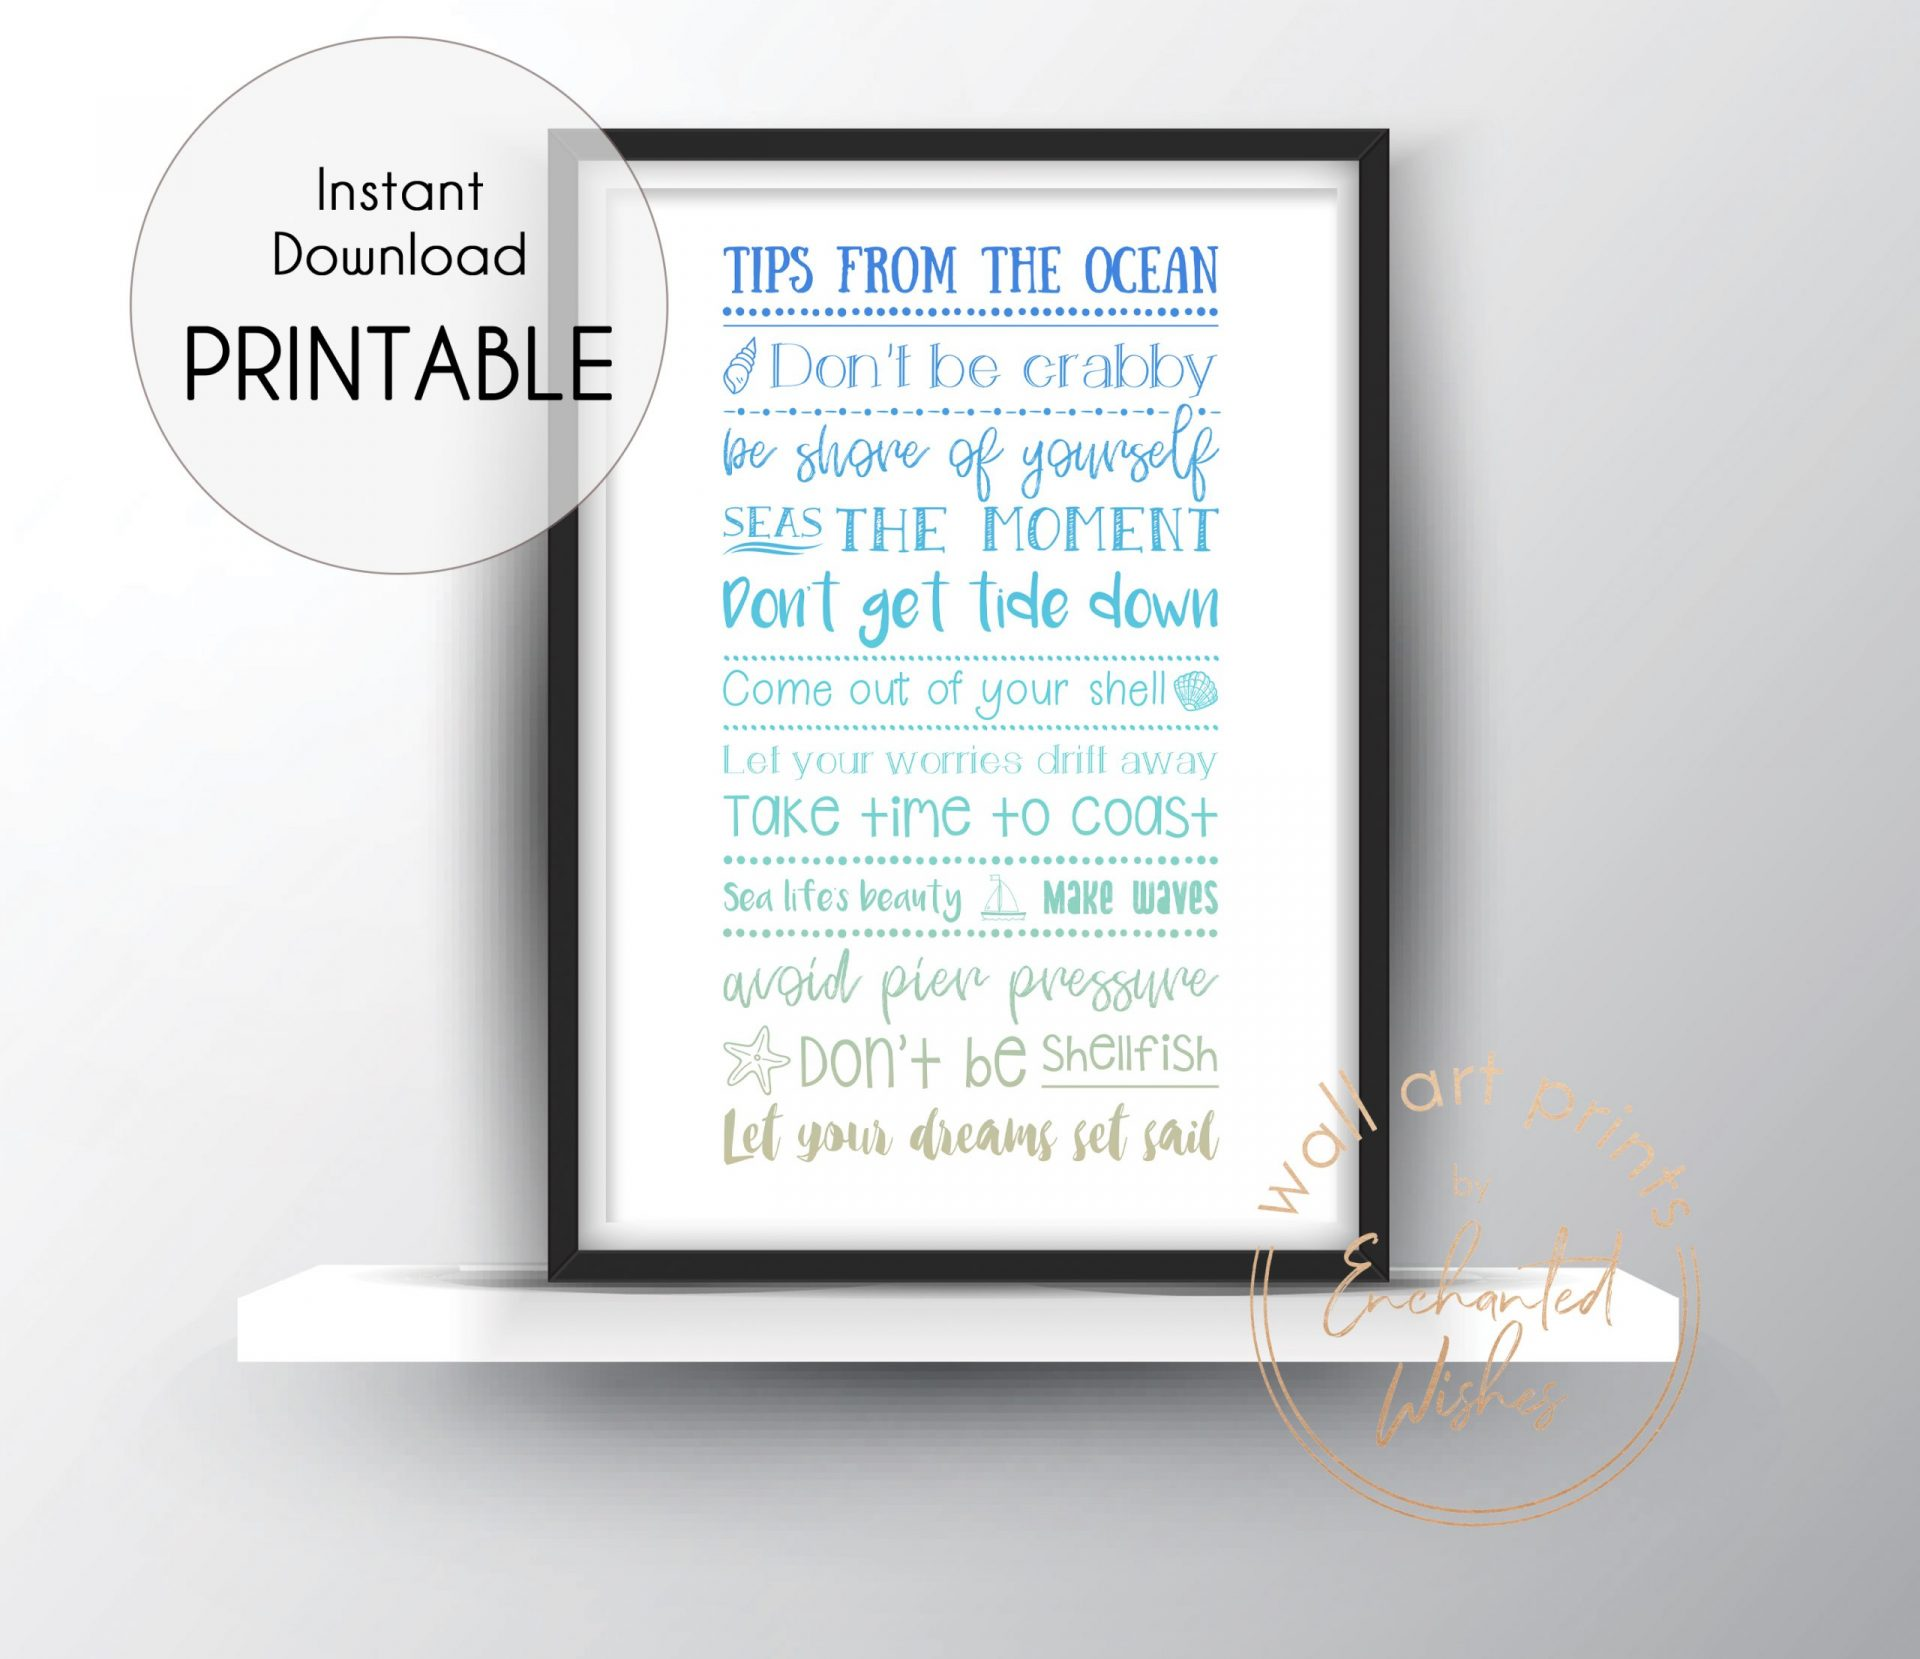 Tips from the ocean print